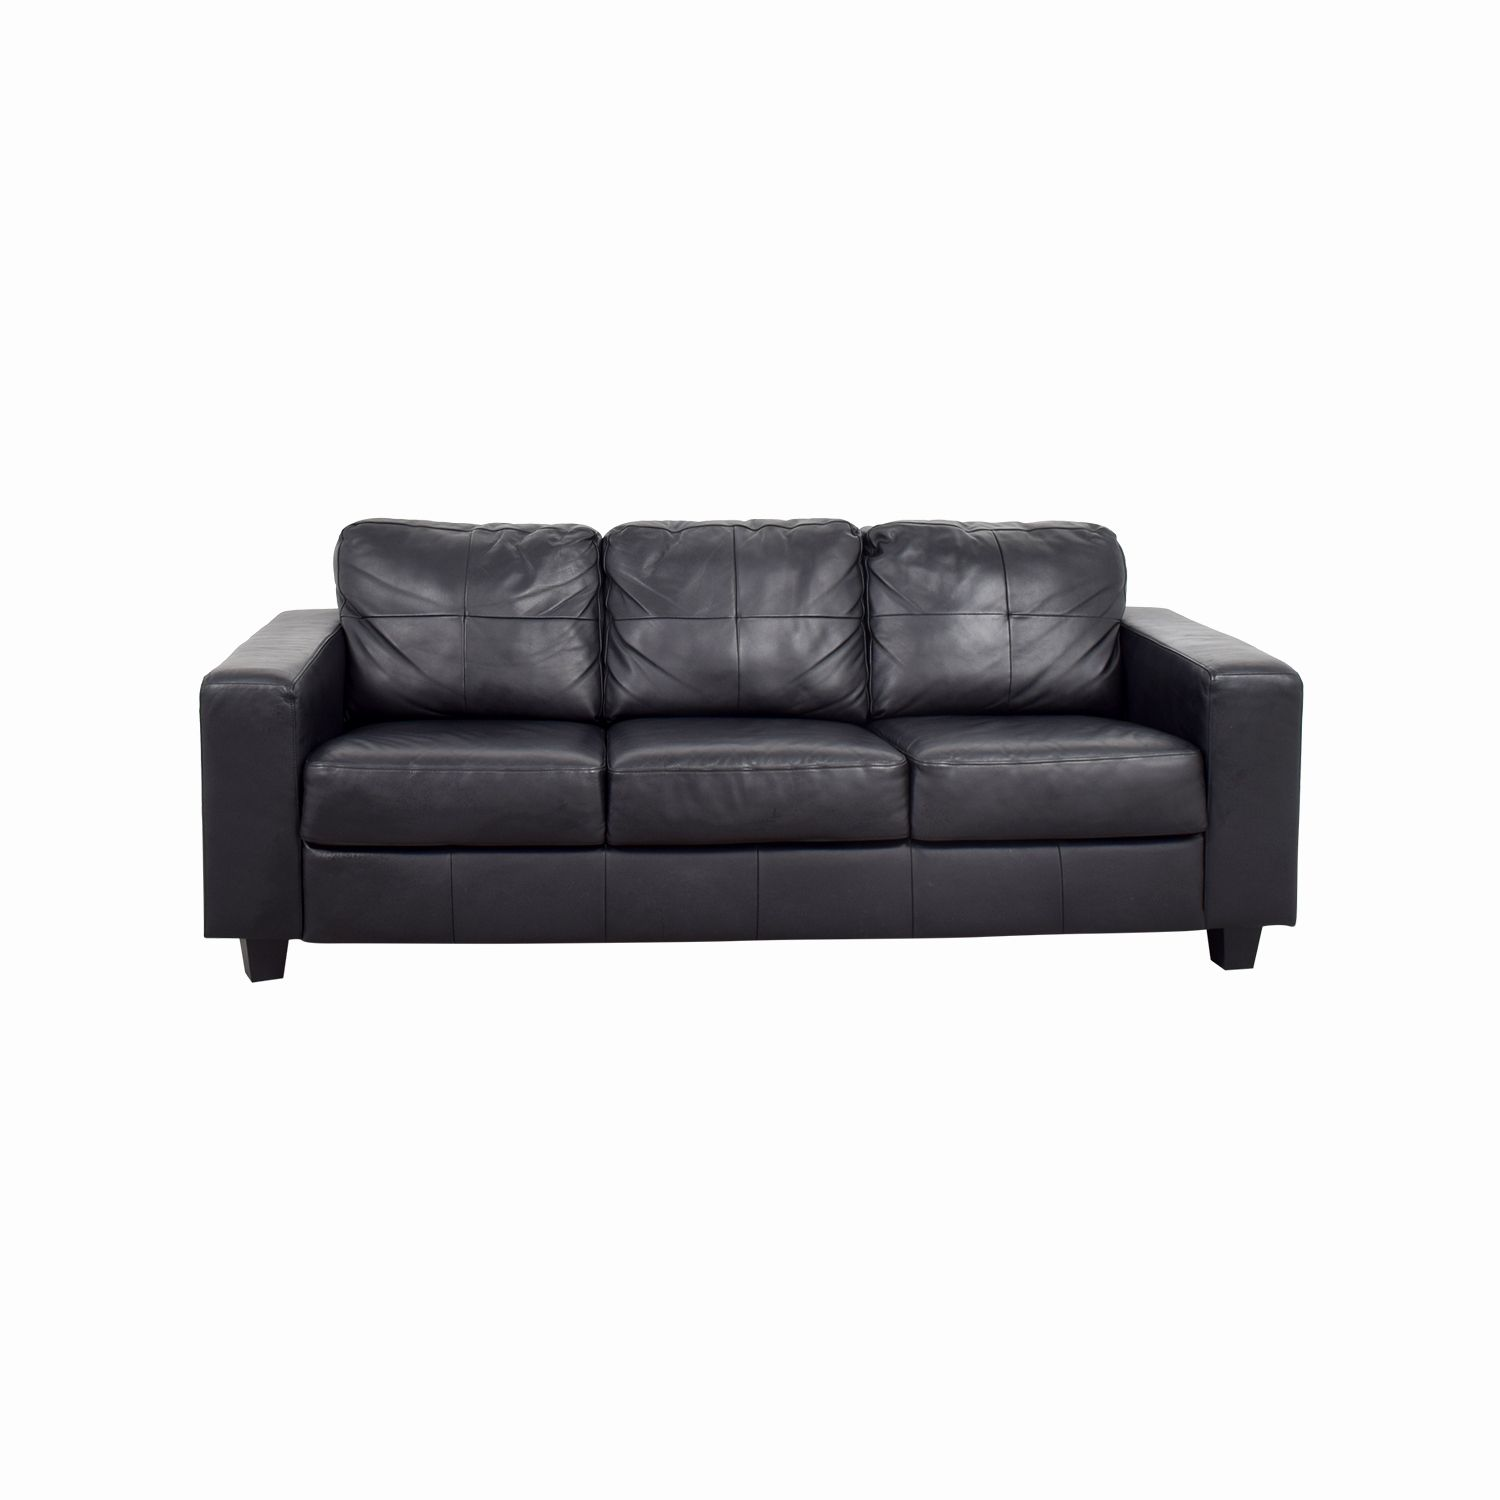 Ikea Sater Sofa Uk Black And Gray Walls Sofas Leather Arnhistoria